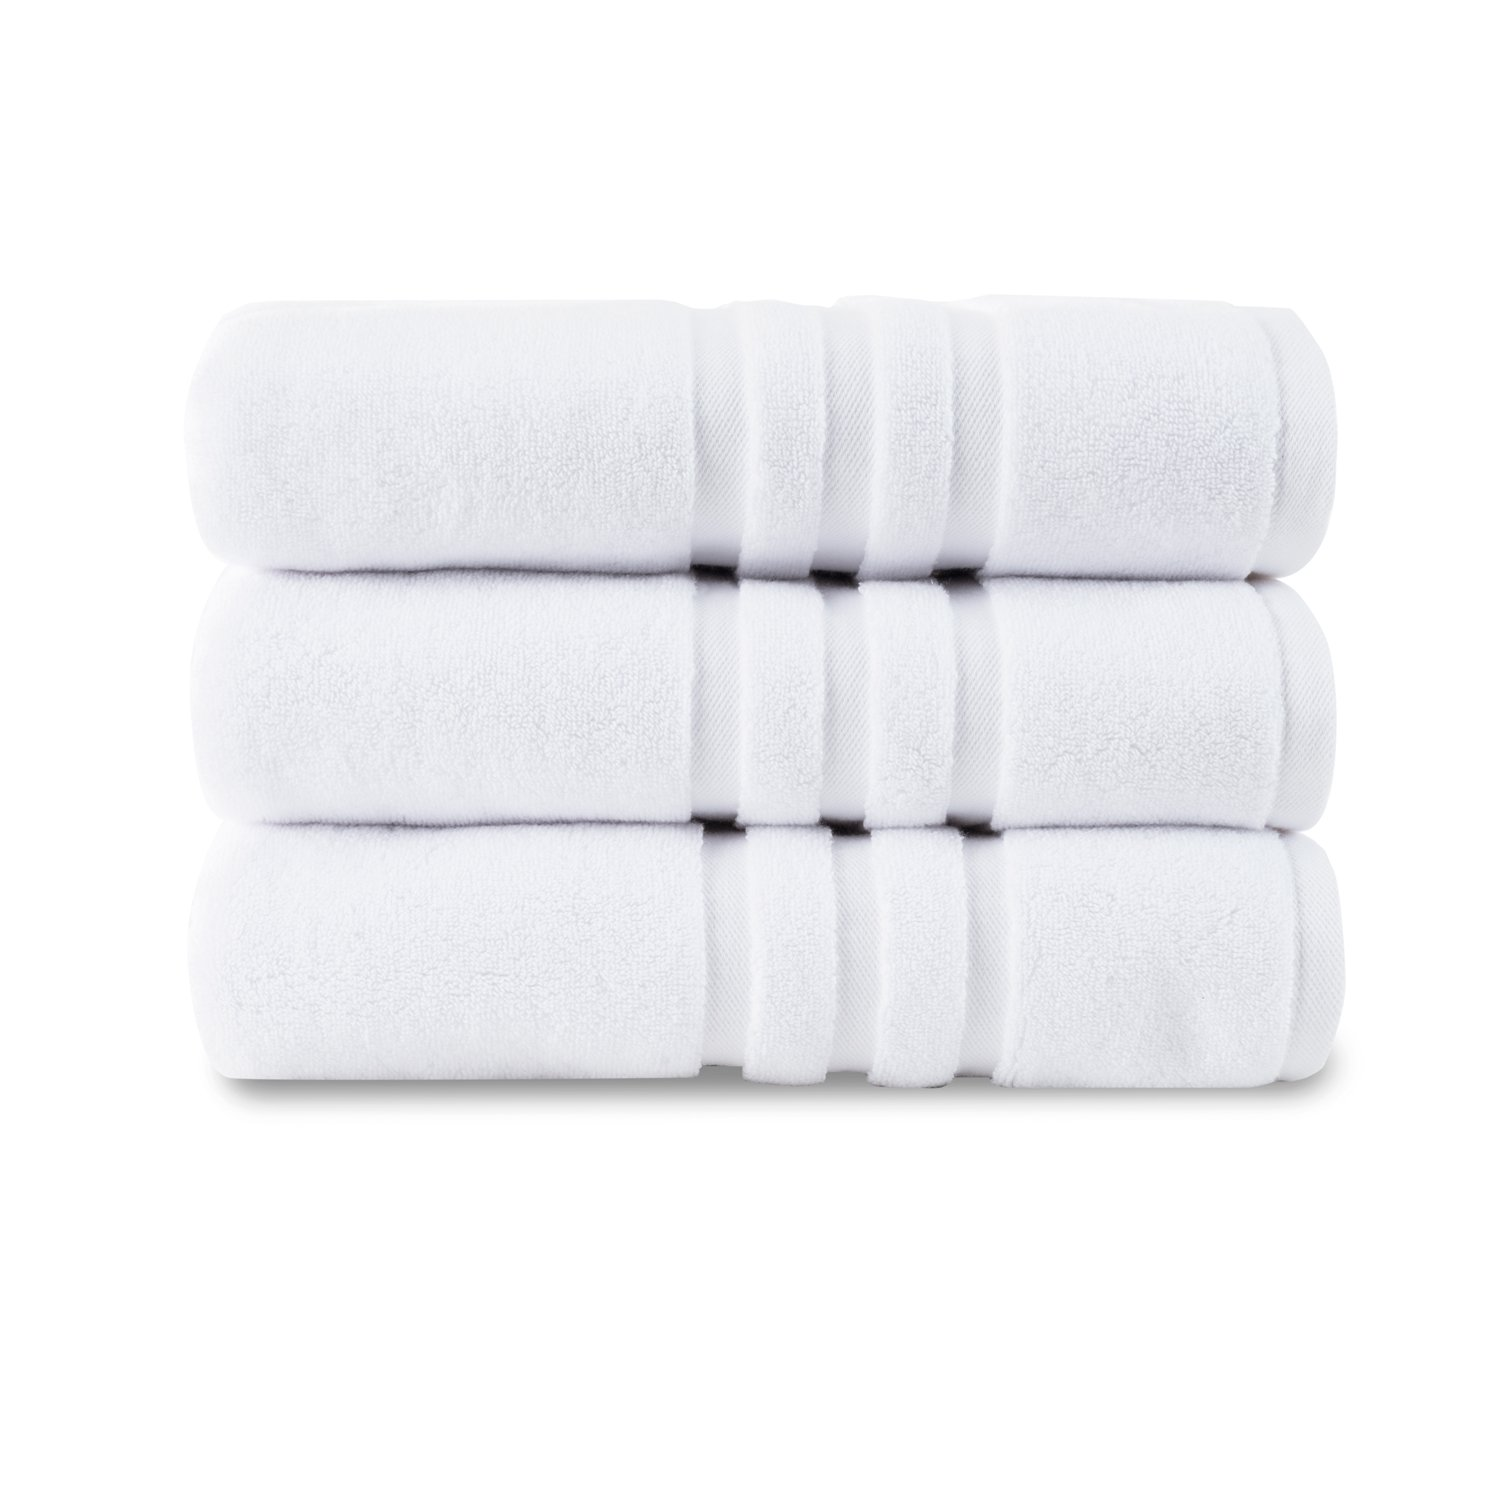 Chortex Irvington Hotel Luxury 850gsm 100% Turkish Cotton, Bath Mat-Pack of 1, White Chortex USA